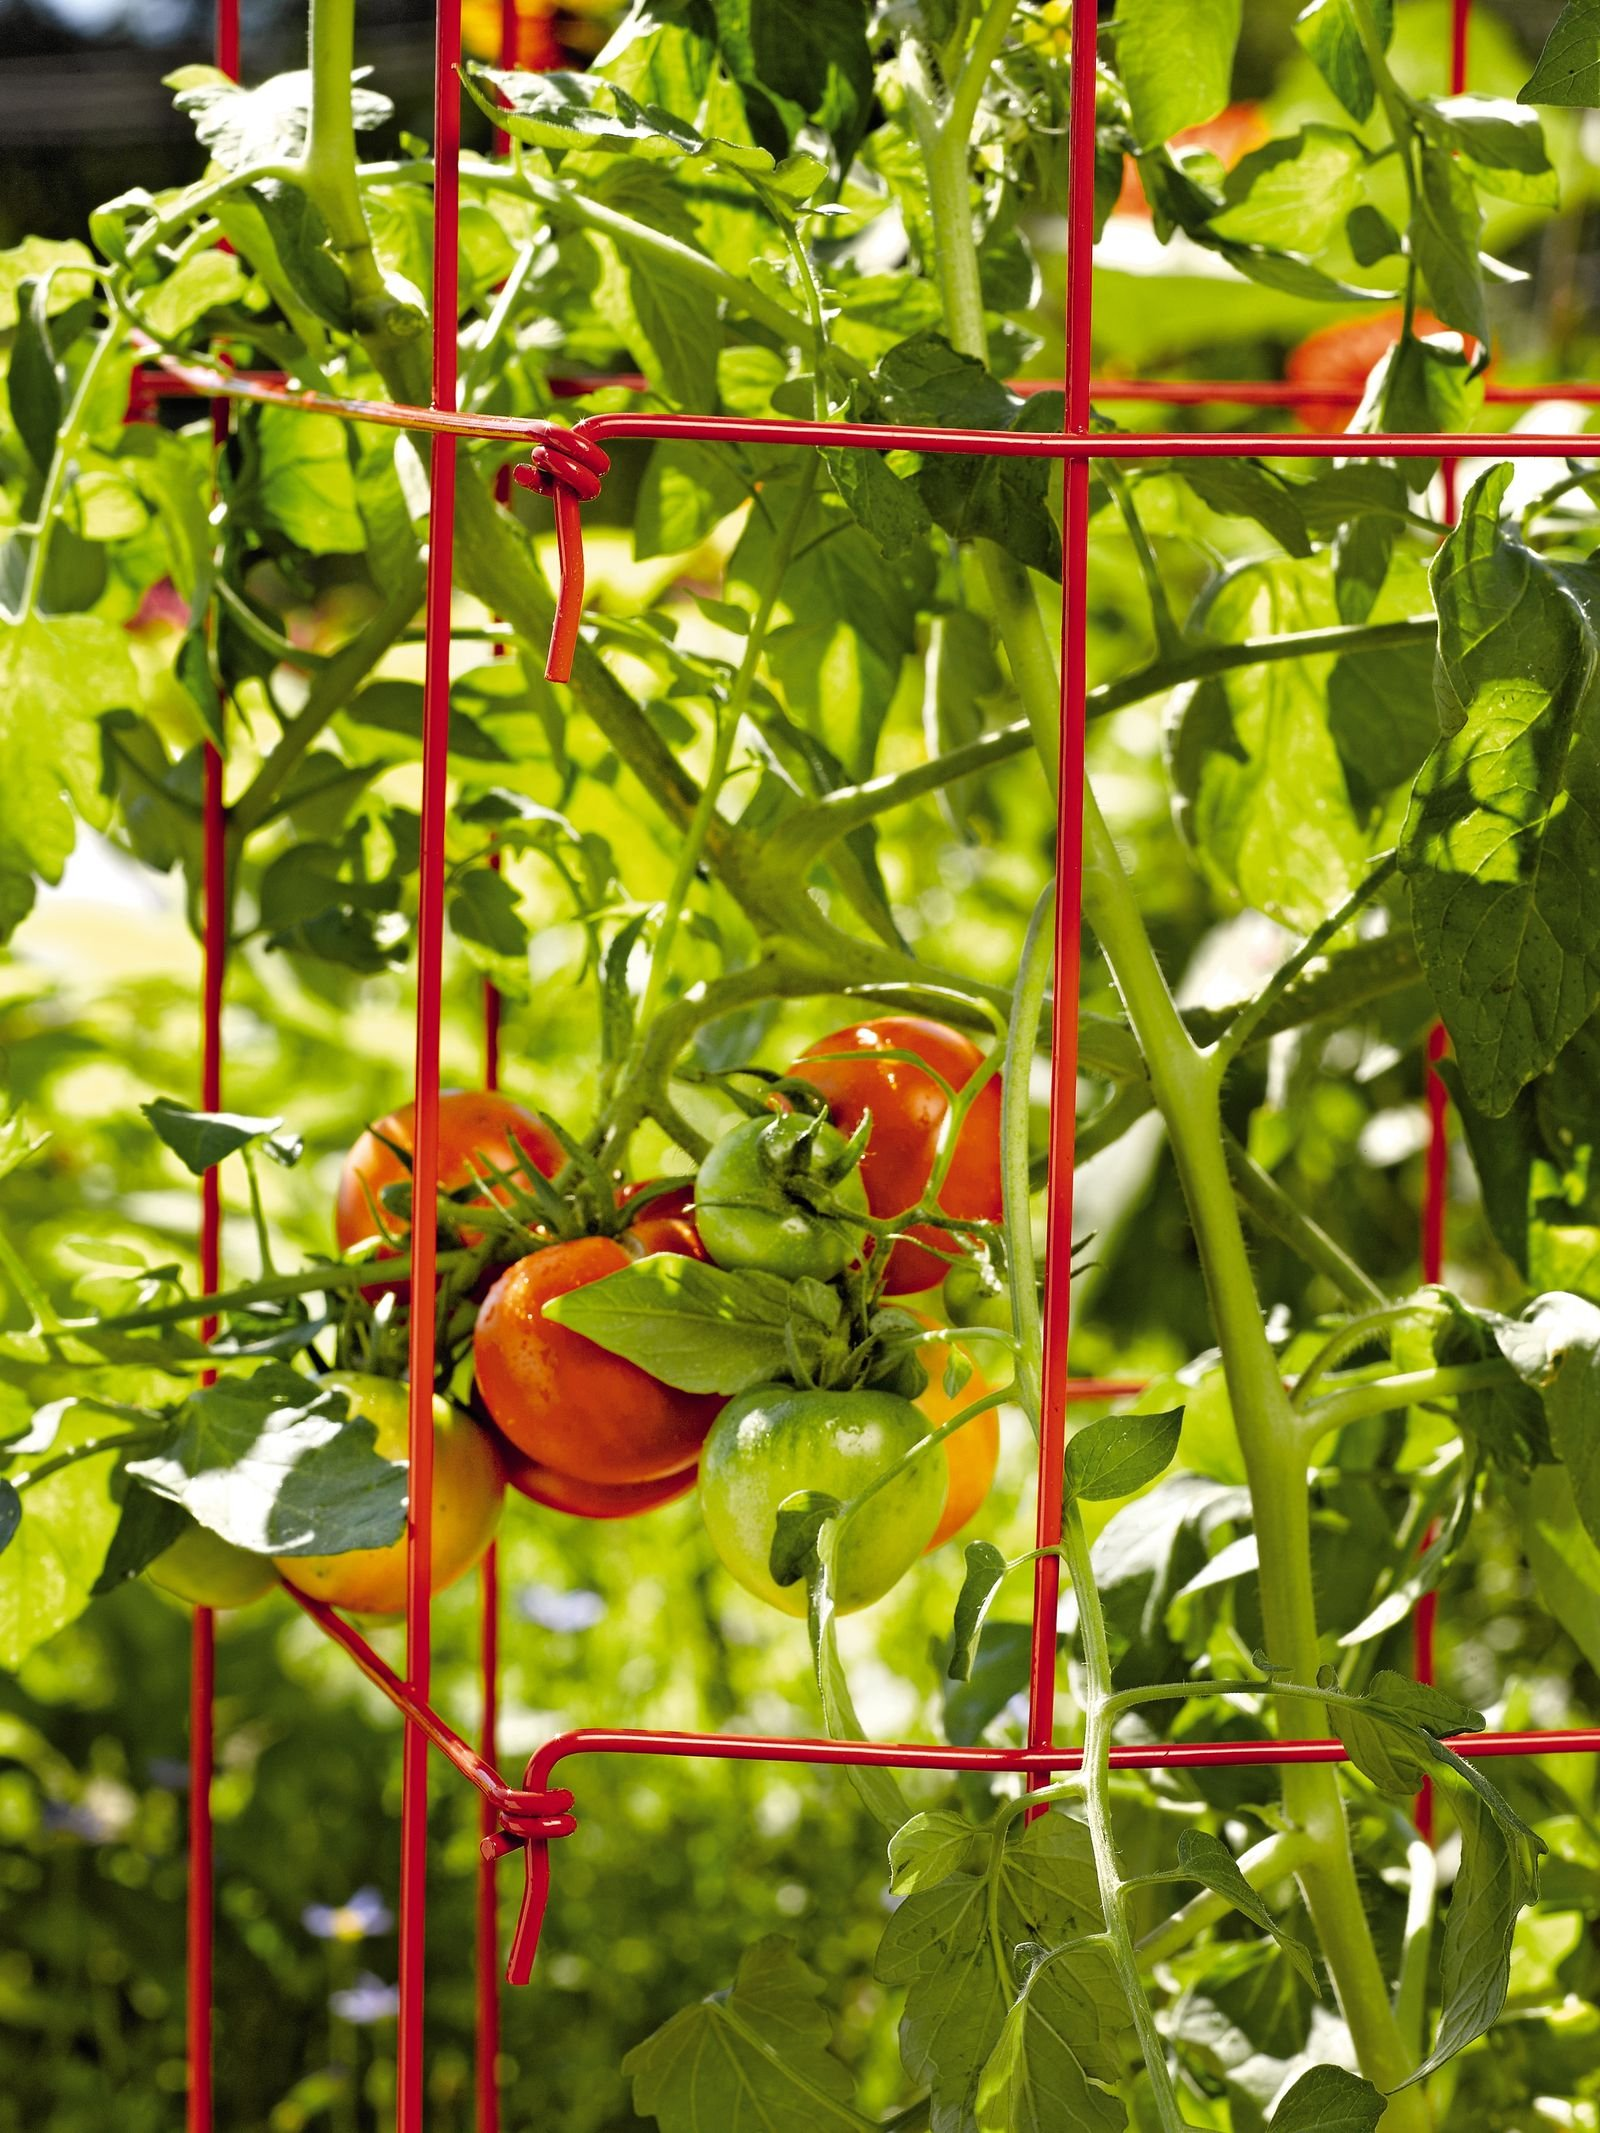 Gardener's Supply Company Square Heavy Gauge Extra Tall Tomato Cage, Set of 2, Red